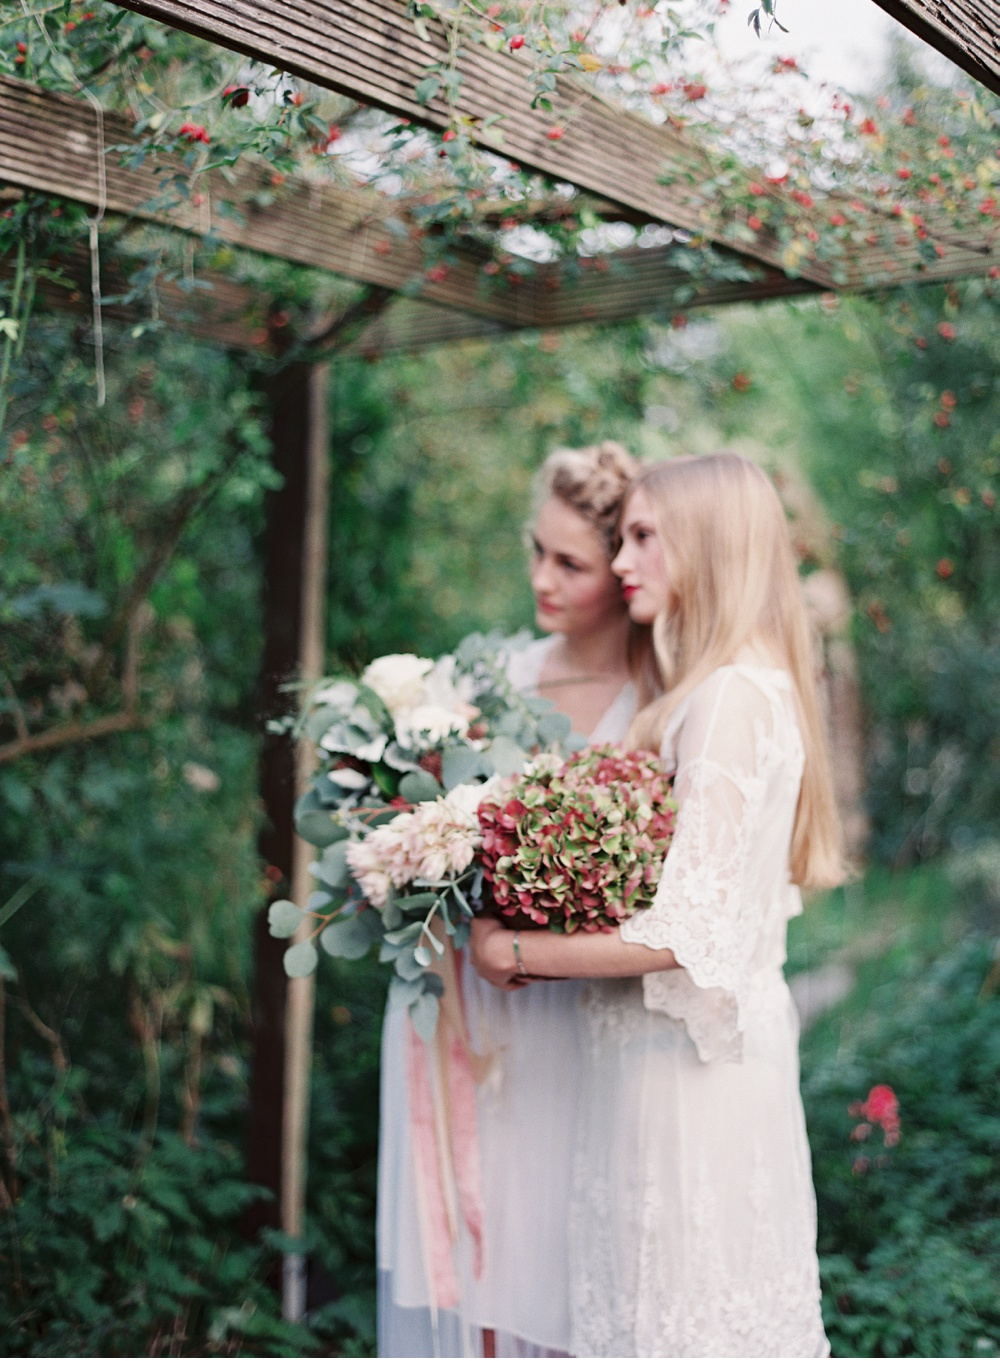 Greenhouse_wedding_inspiration©MadalinaSheldon_0022.jpg